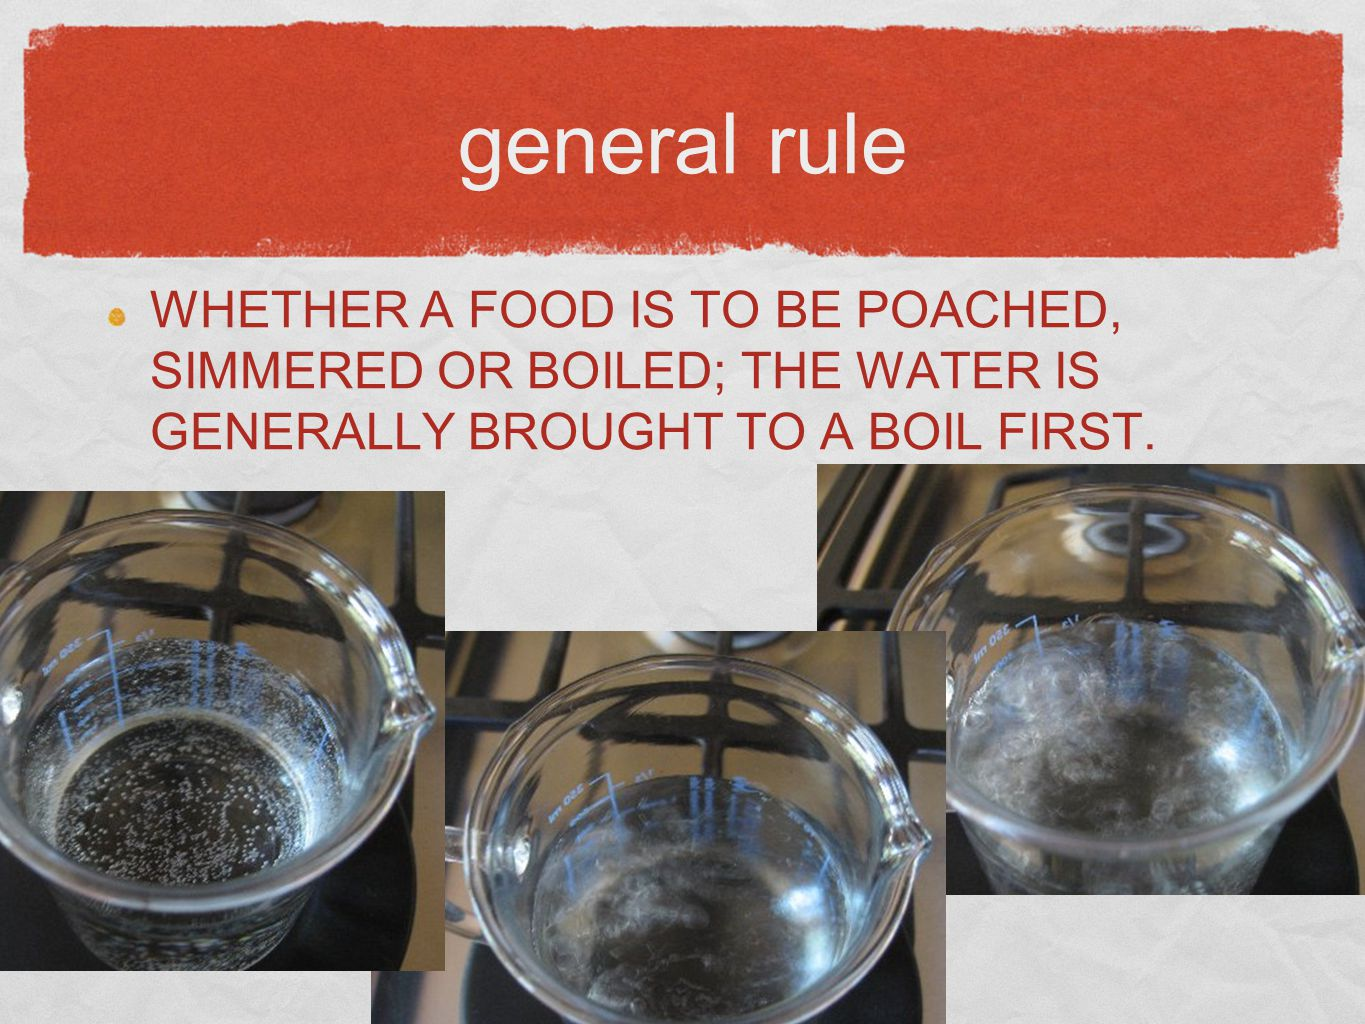 general rule WHETHER A FOOD IS TO BE POACHED, SIMMERED OR BOILED; THE WATER IS GENERALLY BROUGHT TO A BOIL FIRST.